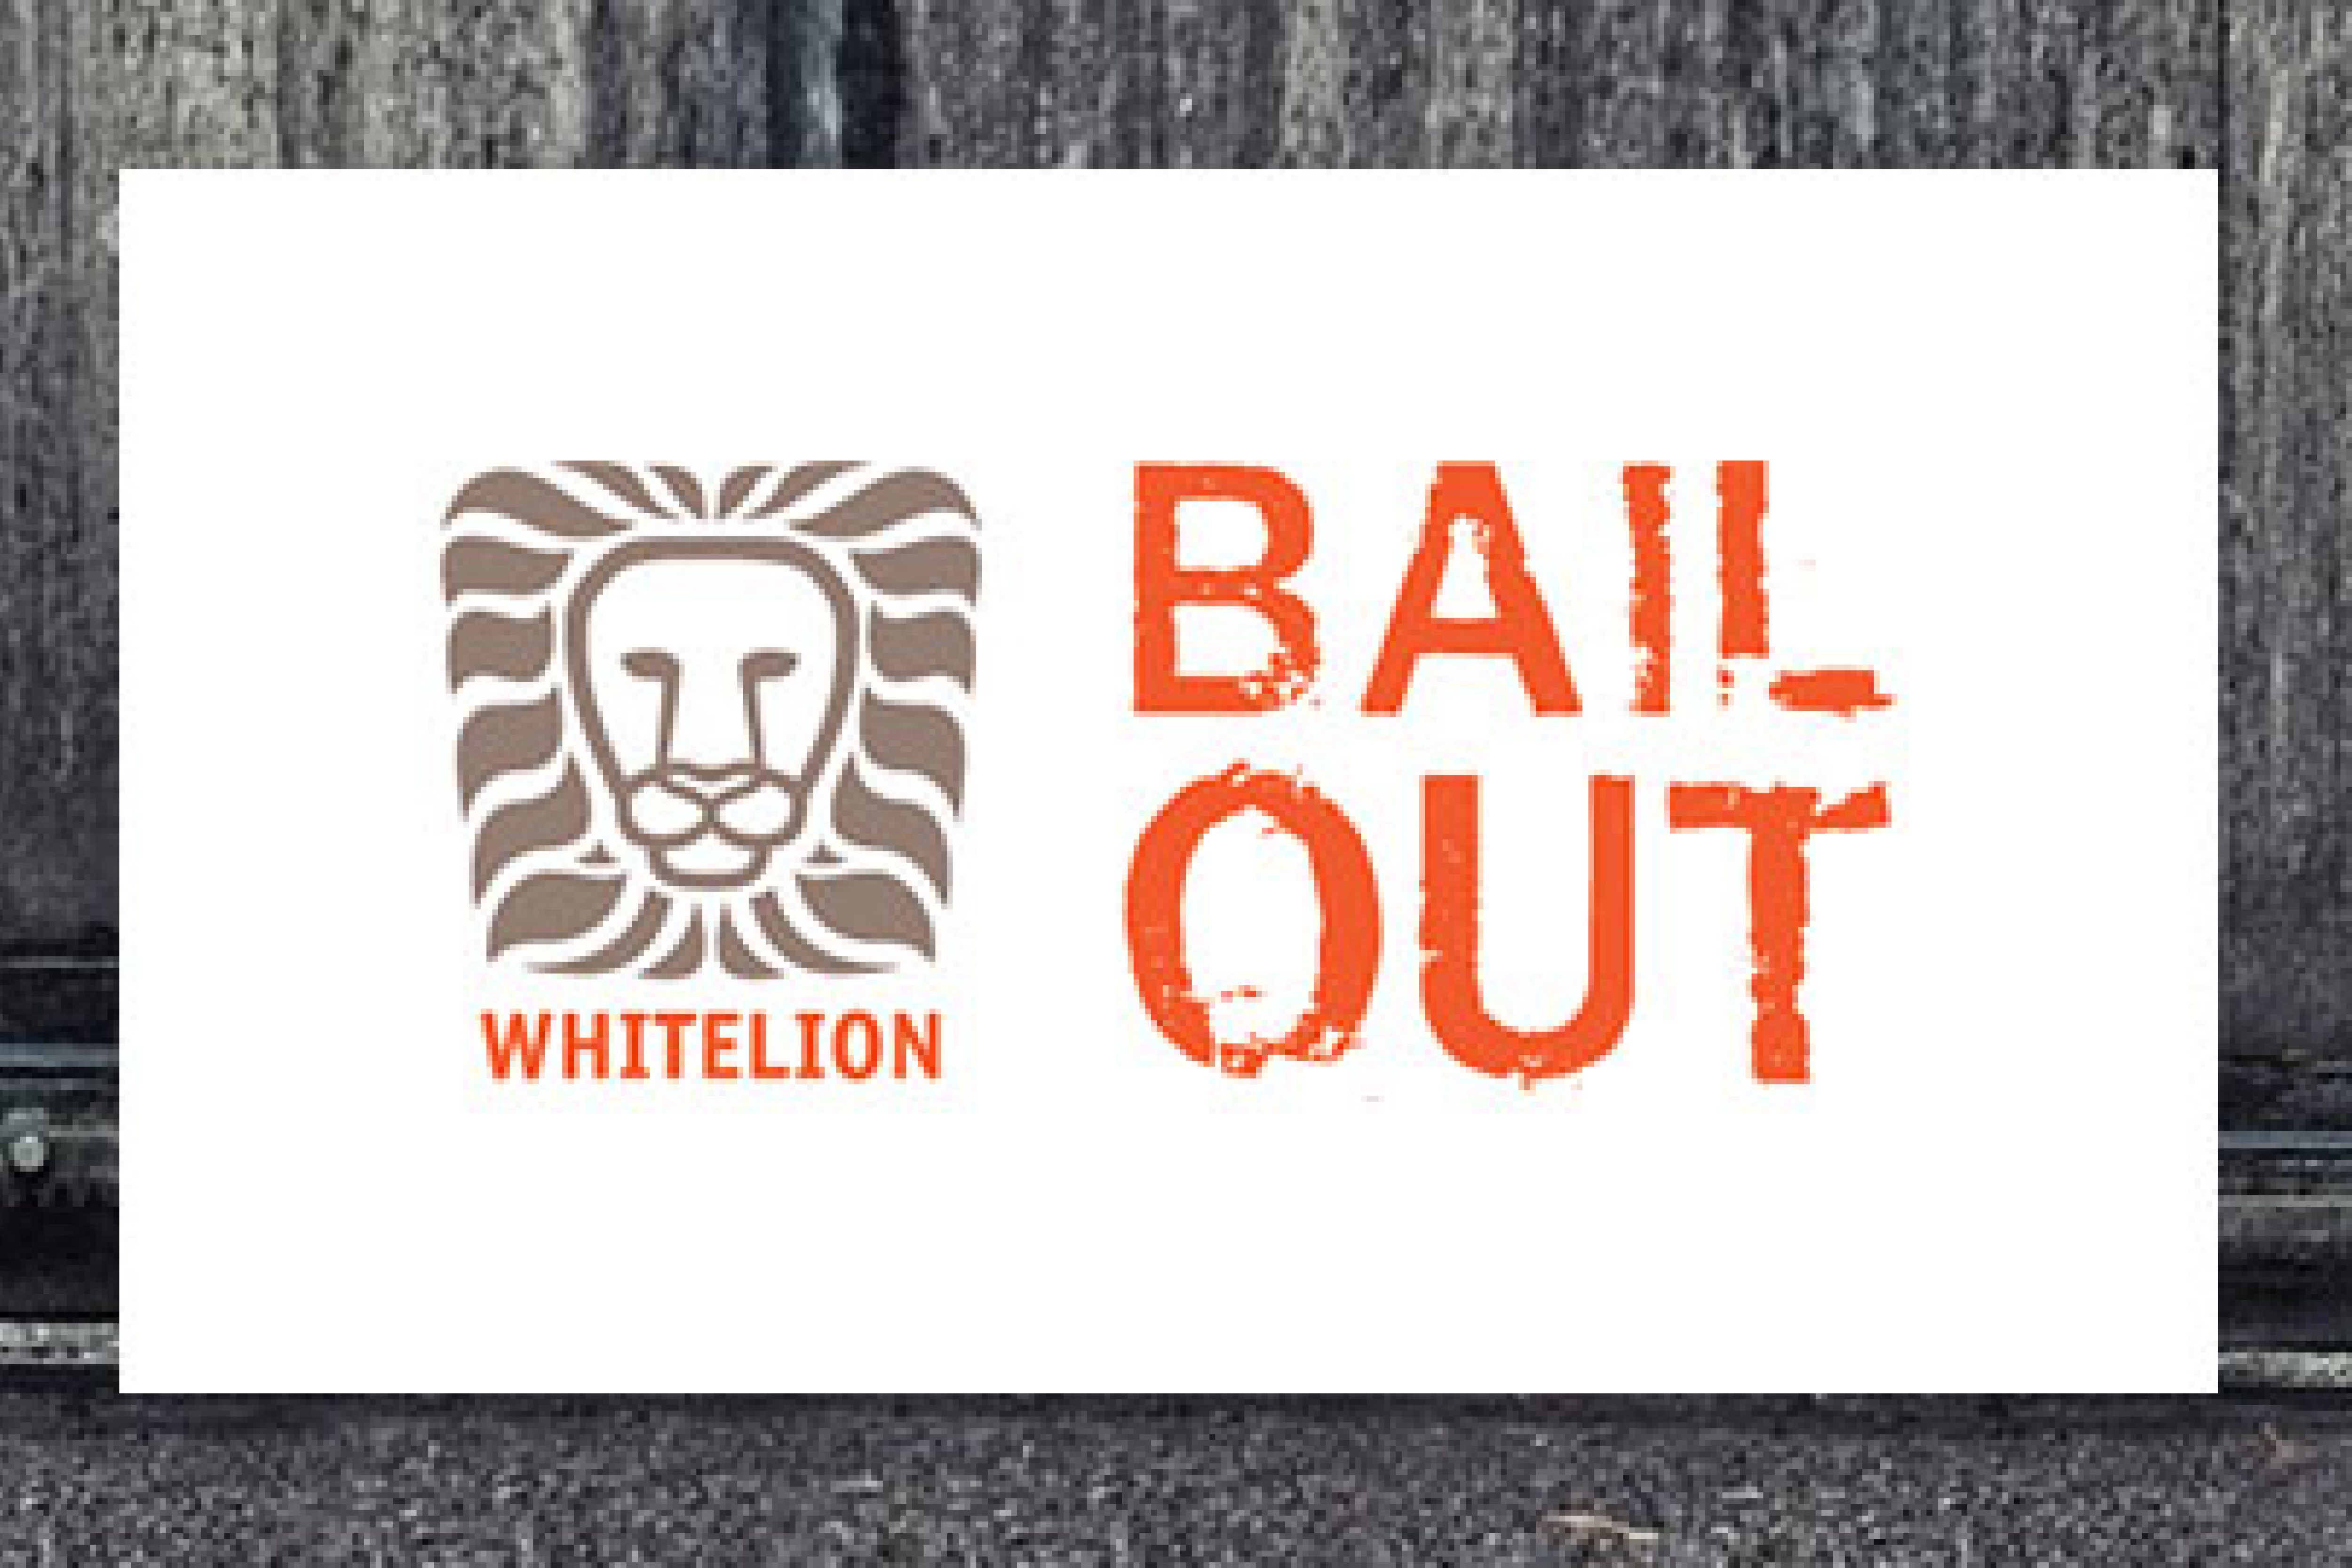 Whitelion Bail Out